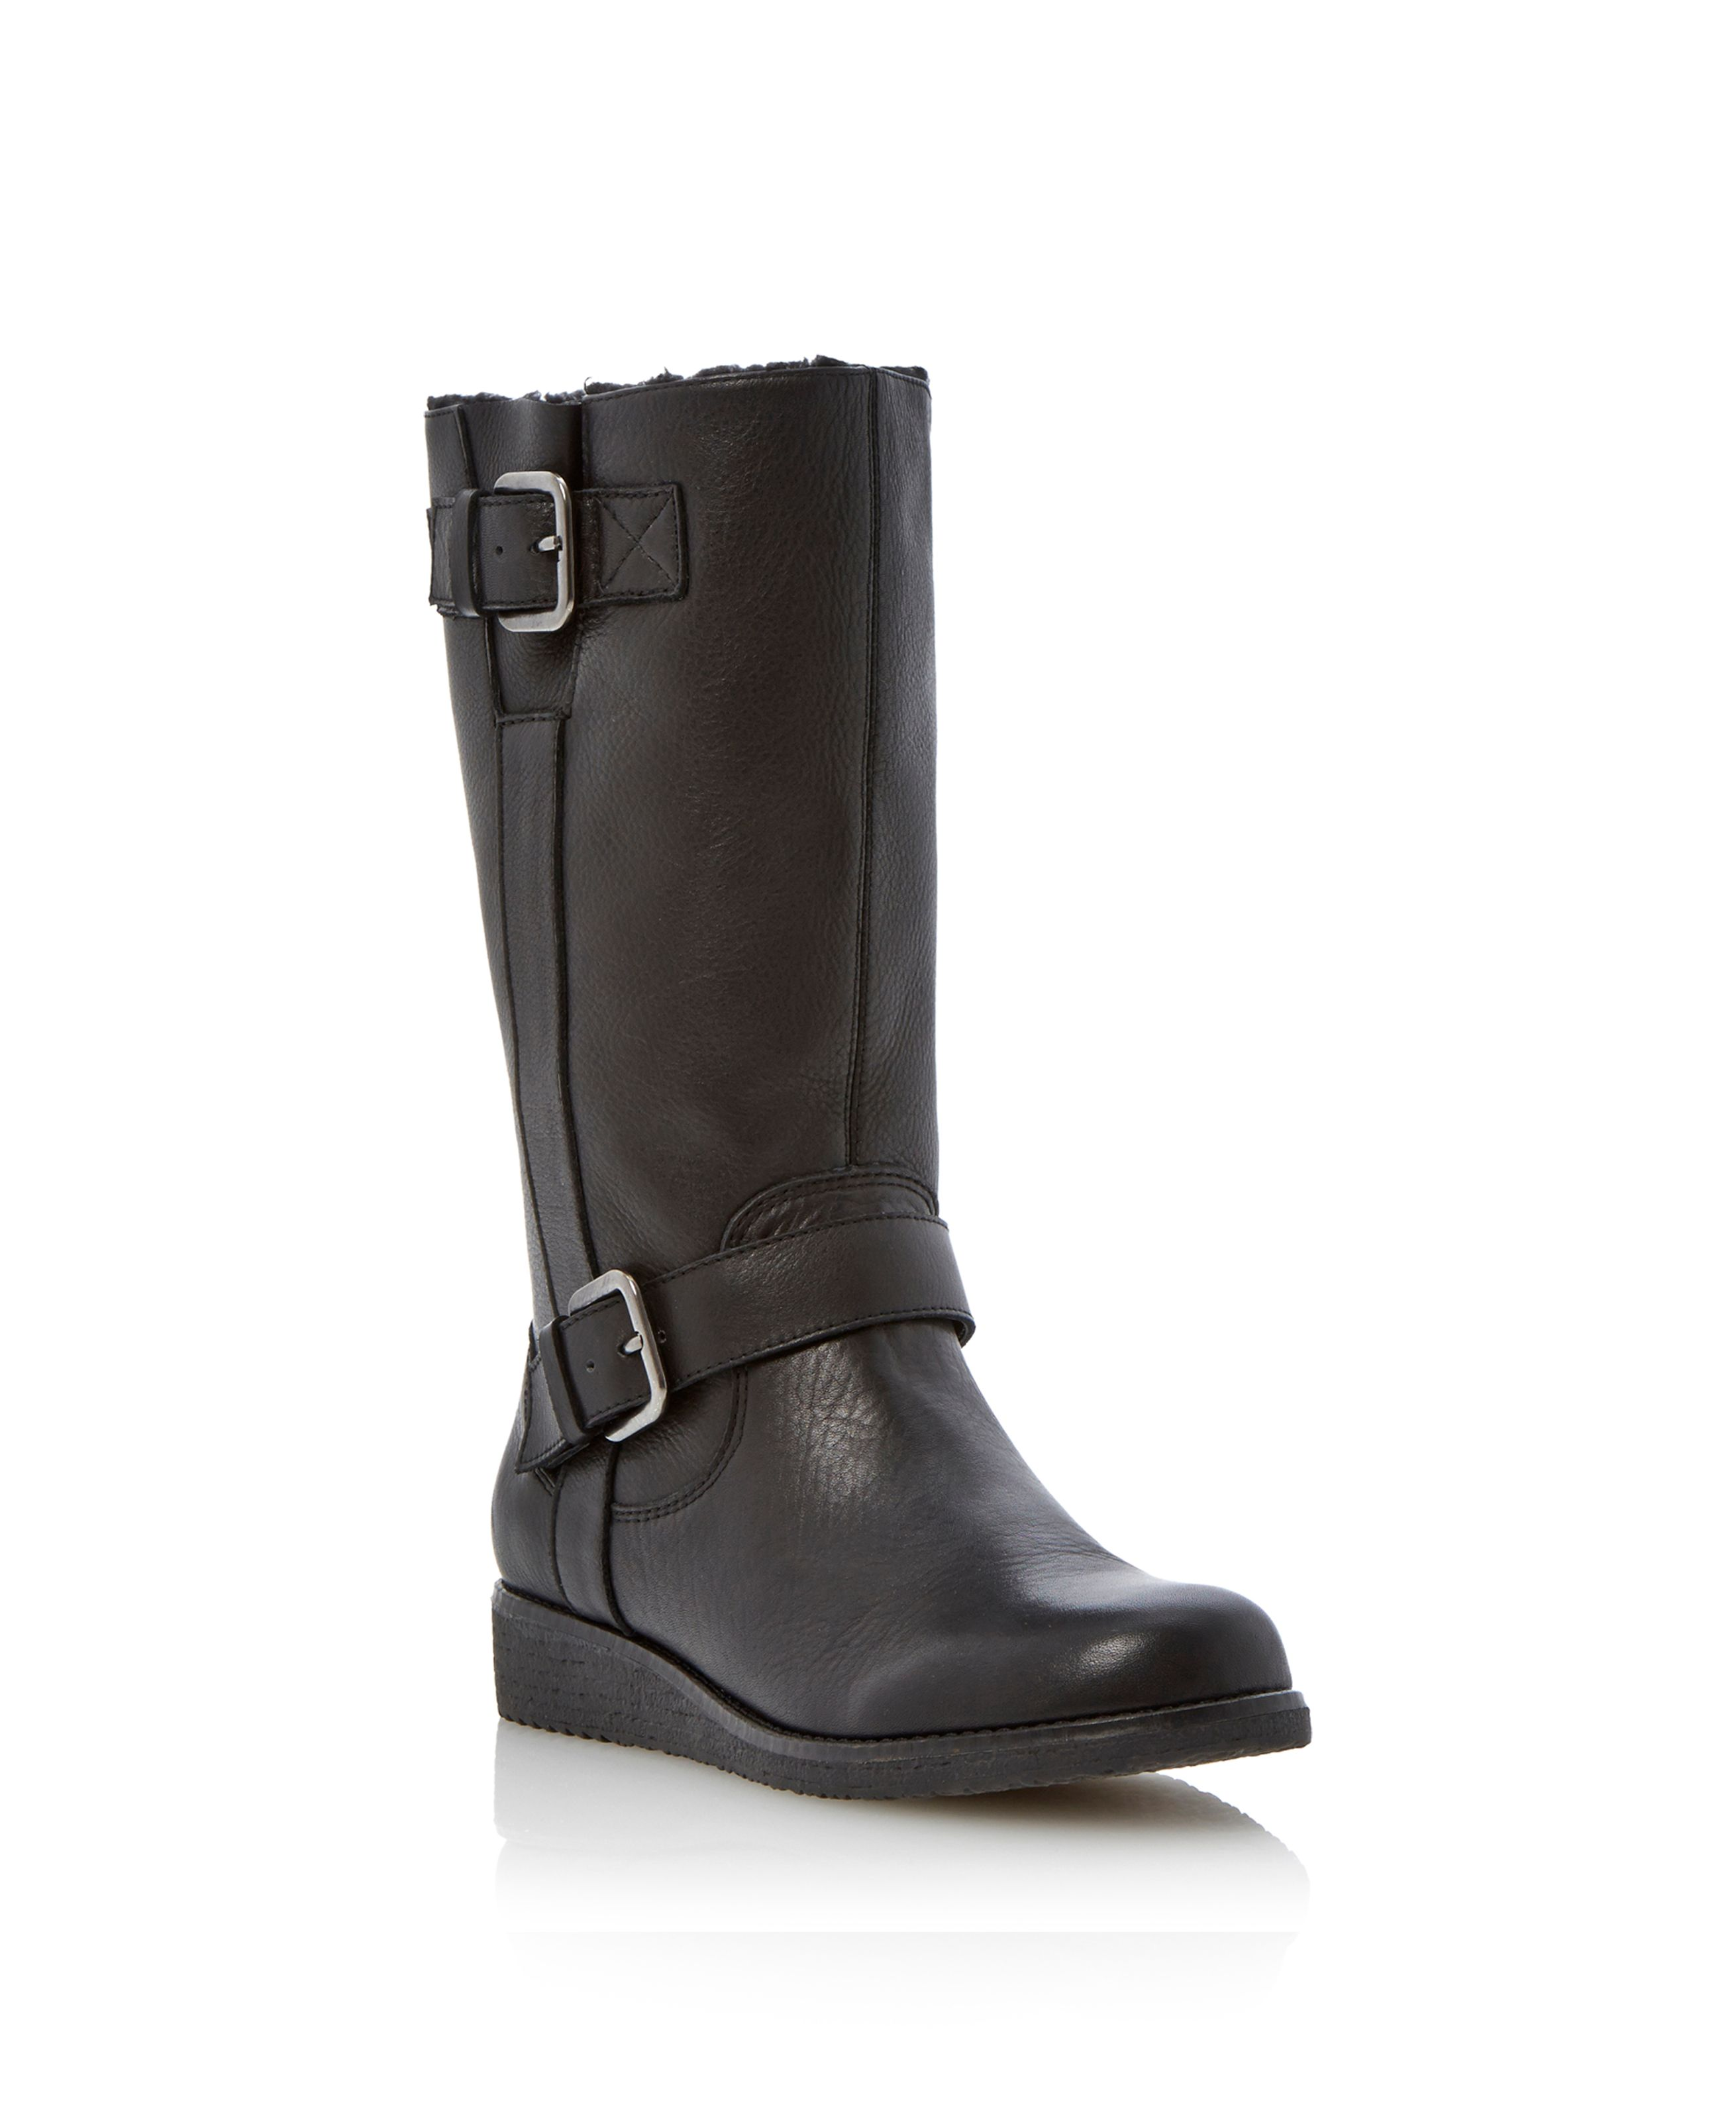 Rits two buckle crepe outsole boots